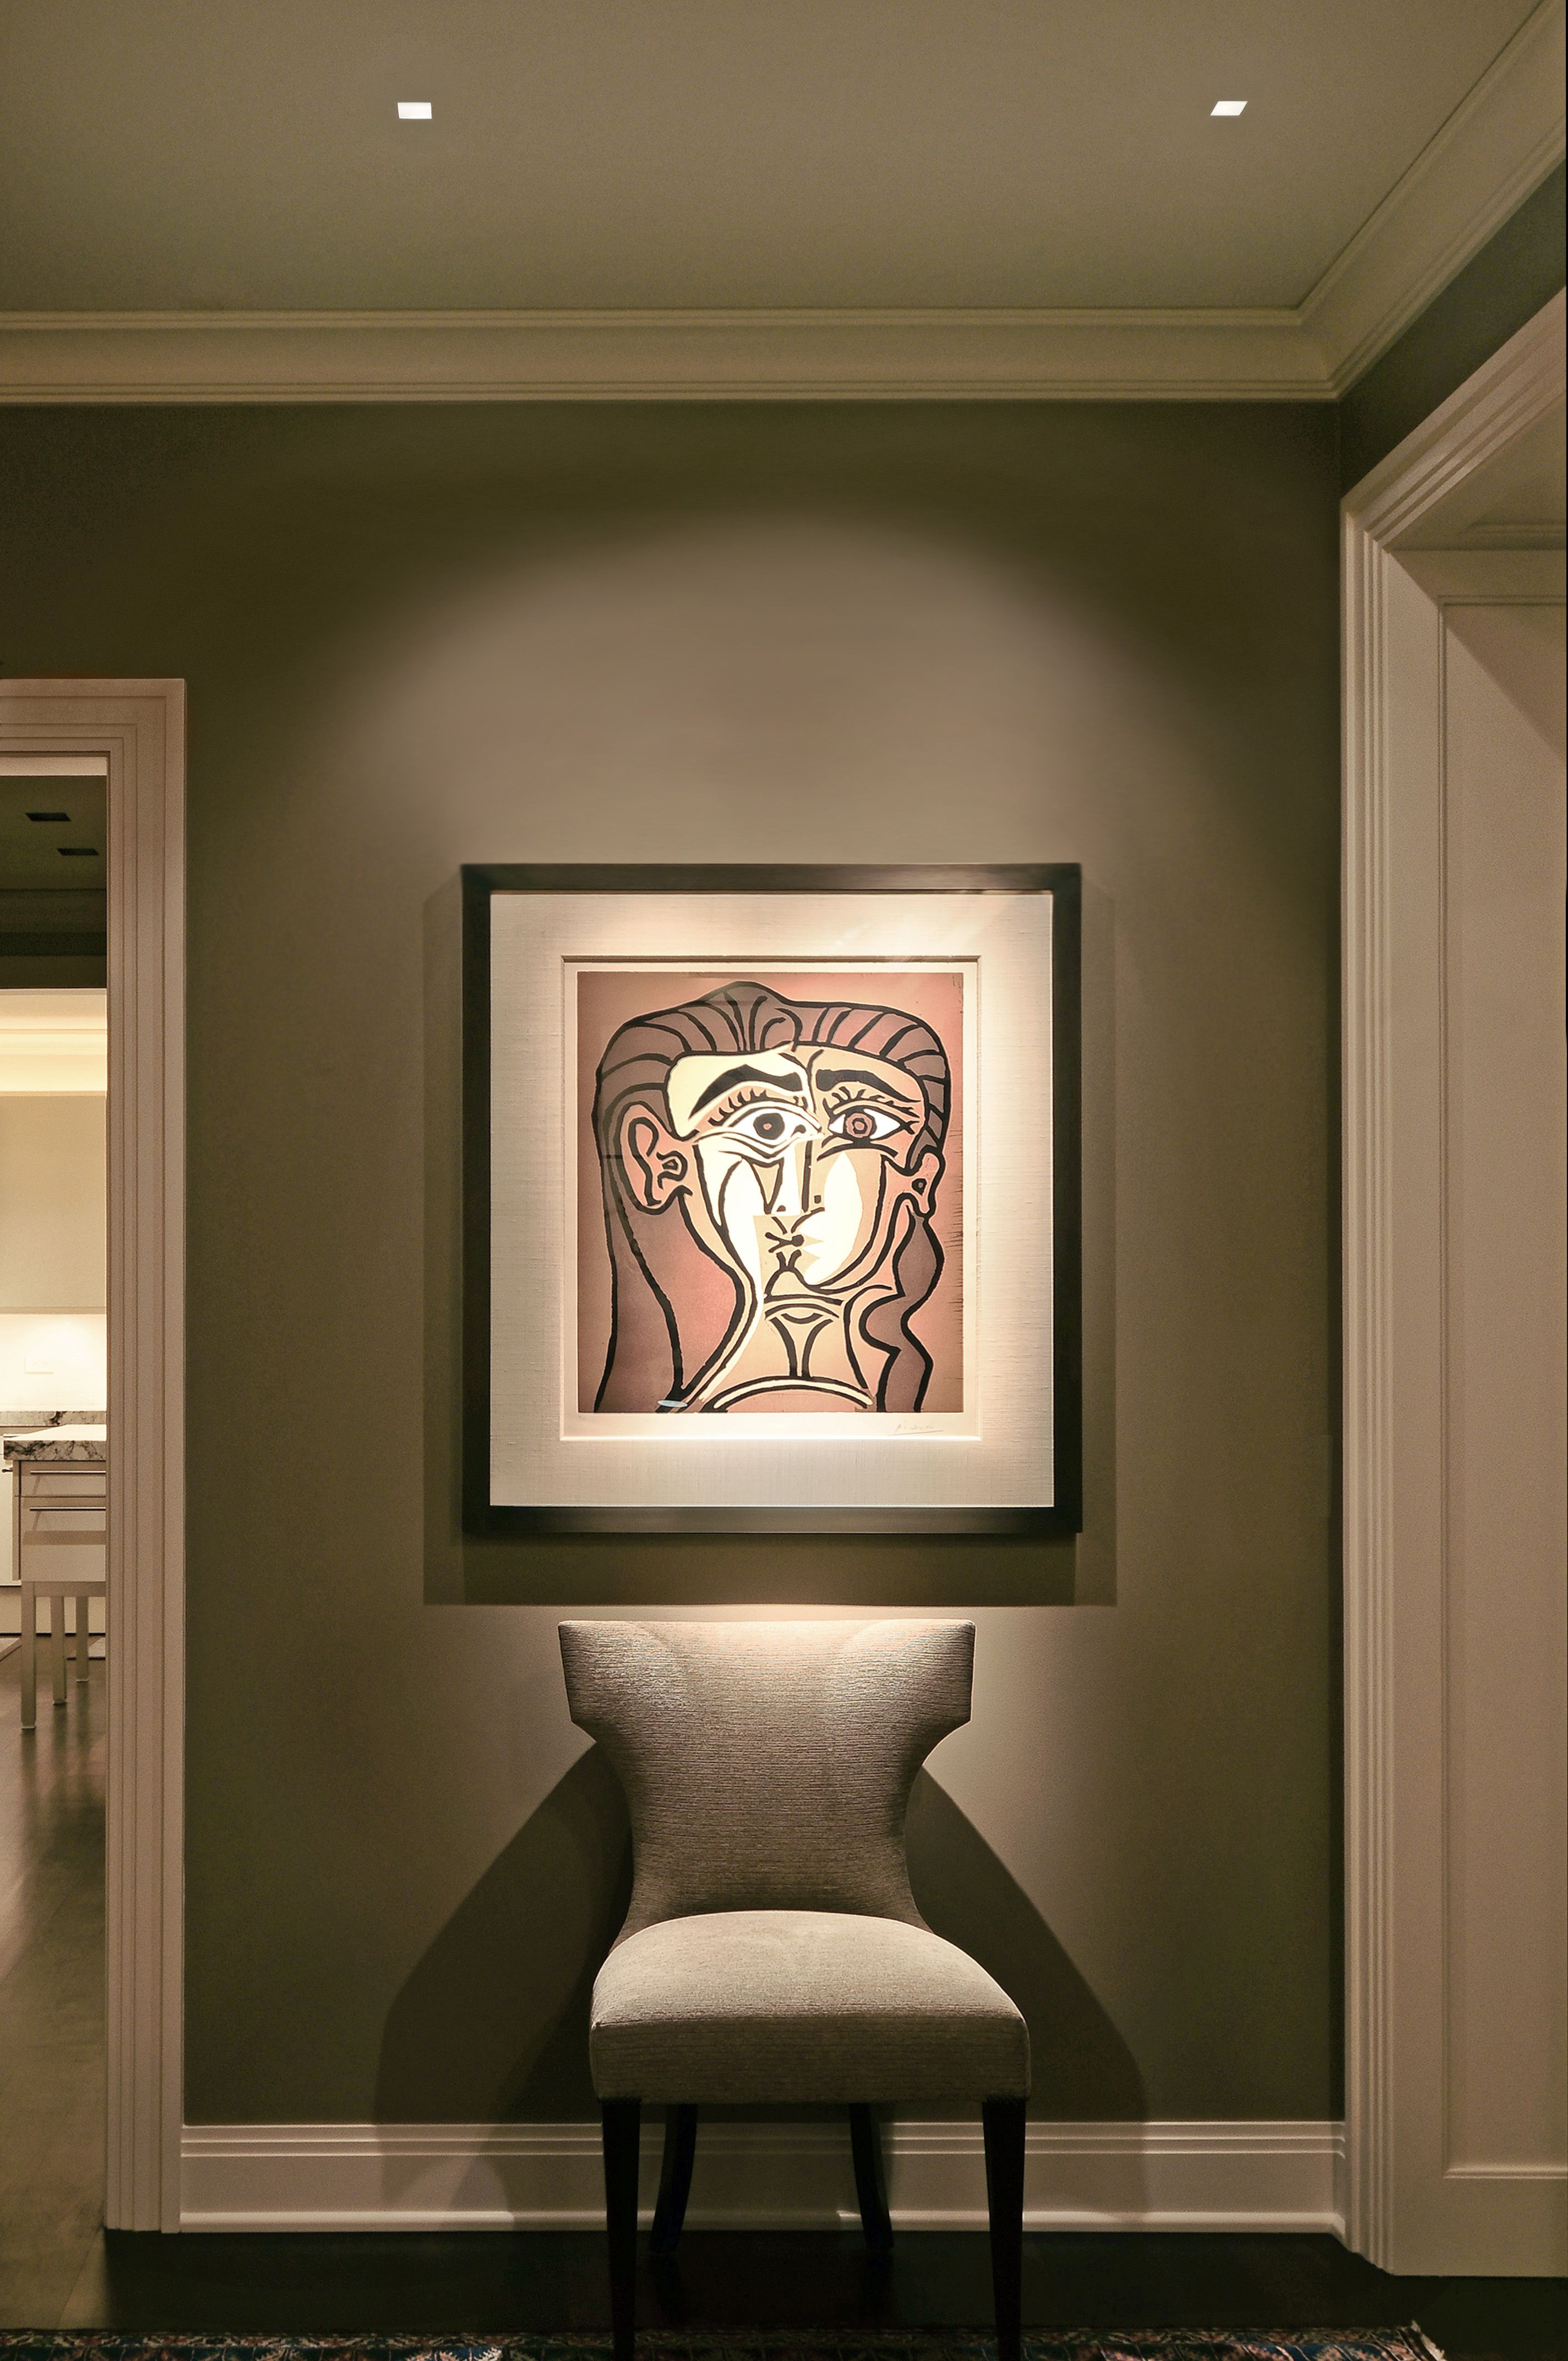 Plaster In Recessed Lighting Solutions Aurora Accent Square Edge By Pure Lighting Artwork Lighting Recessed Lighting Minimalist Lighting